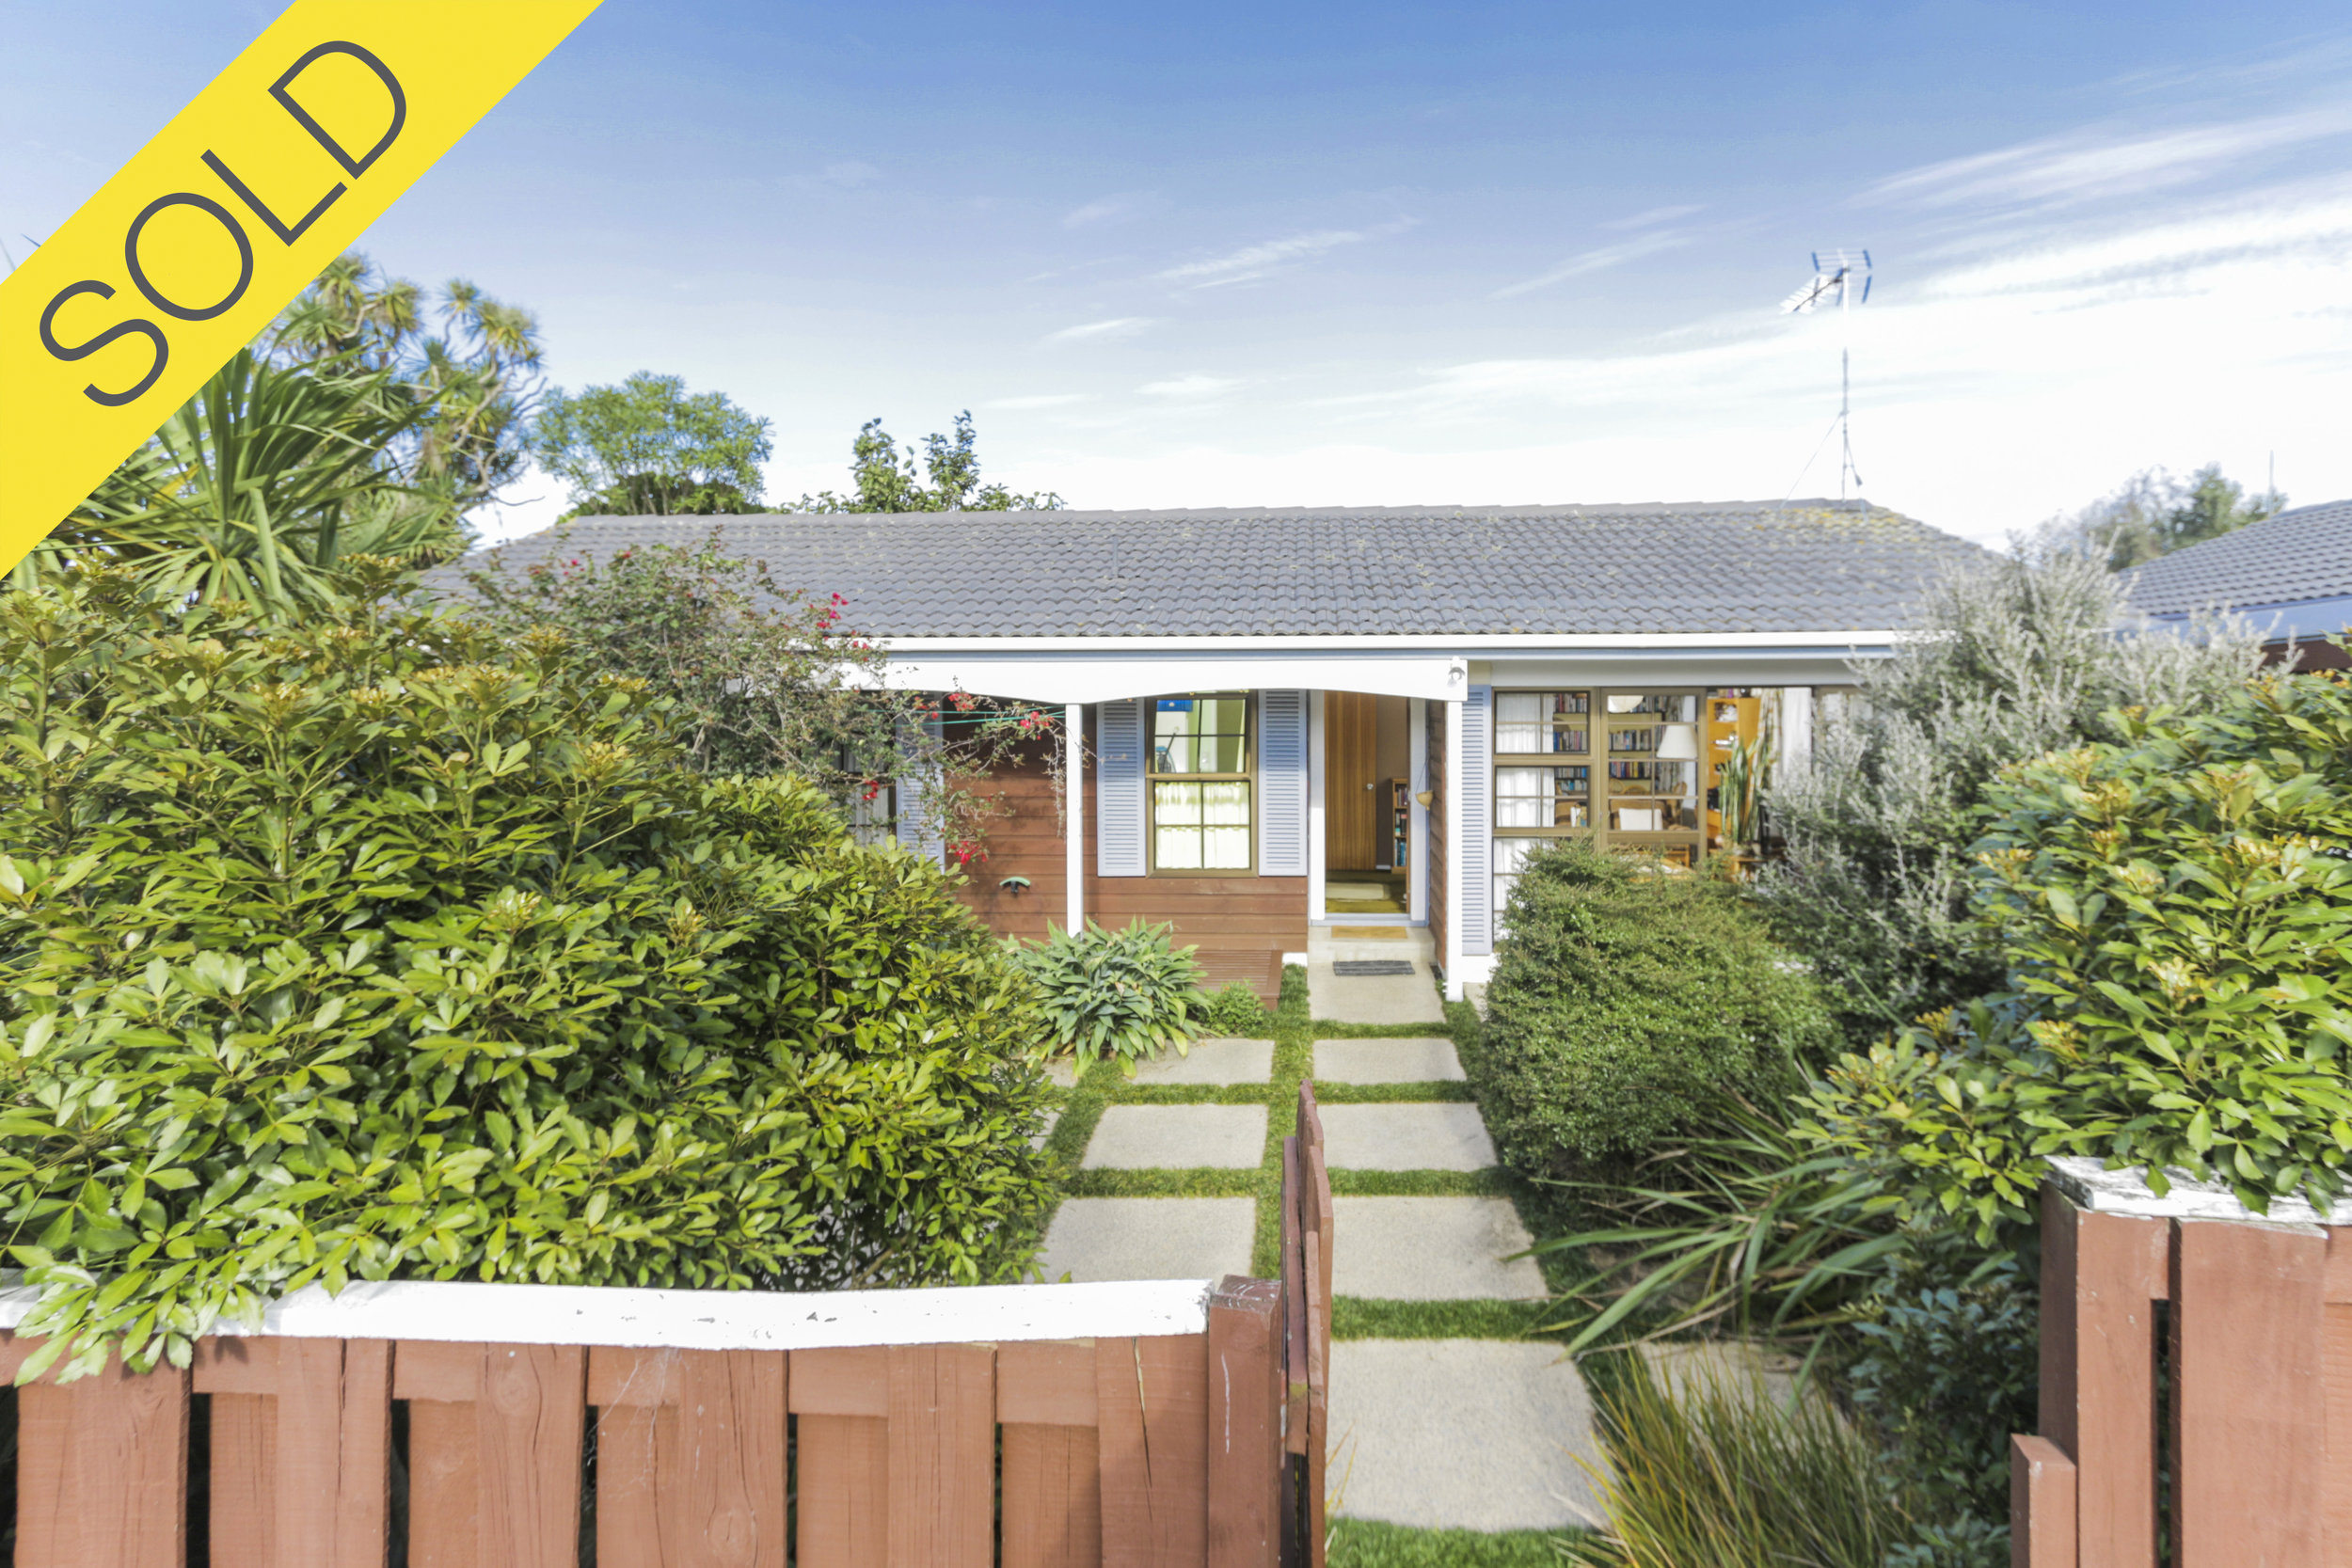 13/151 Selwyn Street, Onehunga, Auckland - SOLD MAY 20172 Beds I 1 Bath I 1 Parking